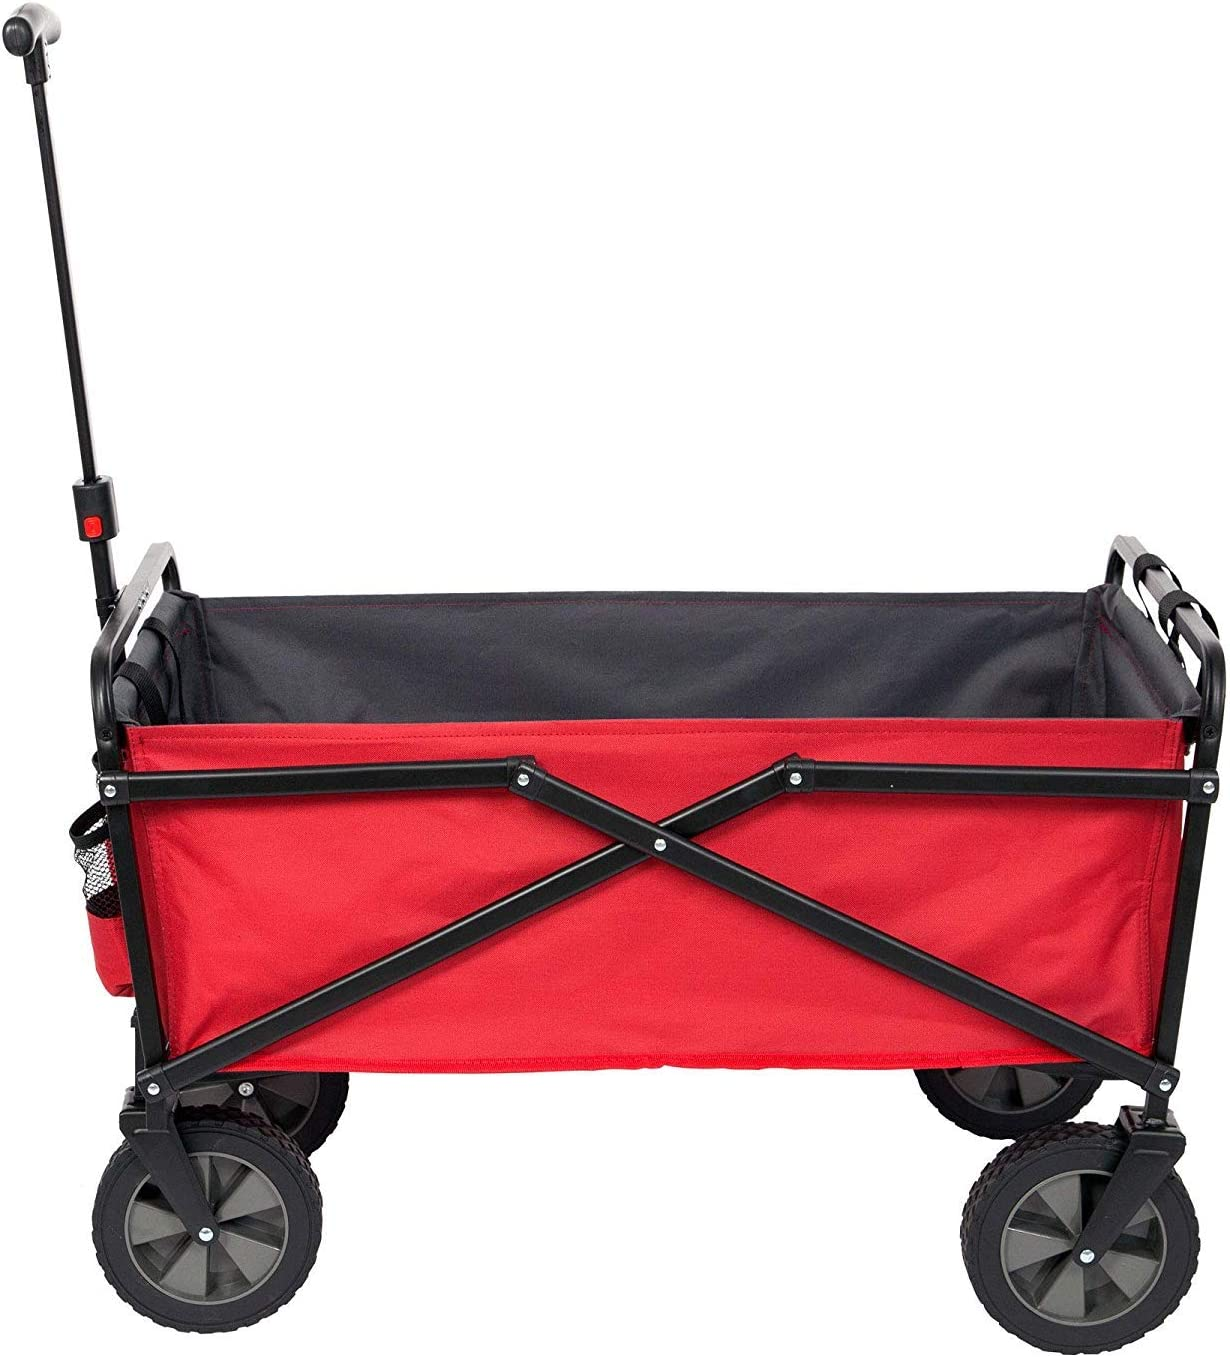 Seina 150 Pound Capacity Portable Folding Steel Wagon